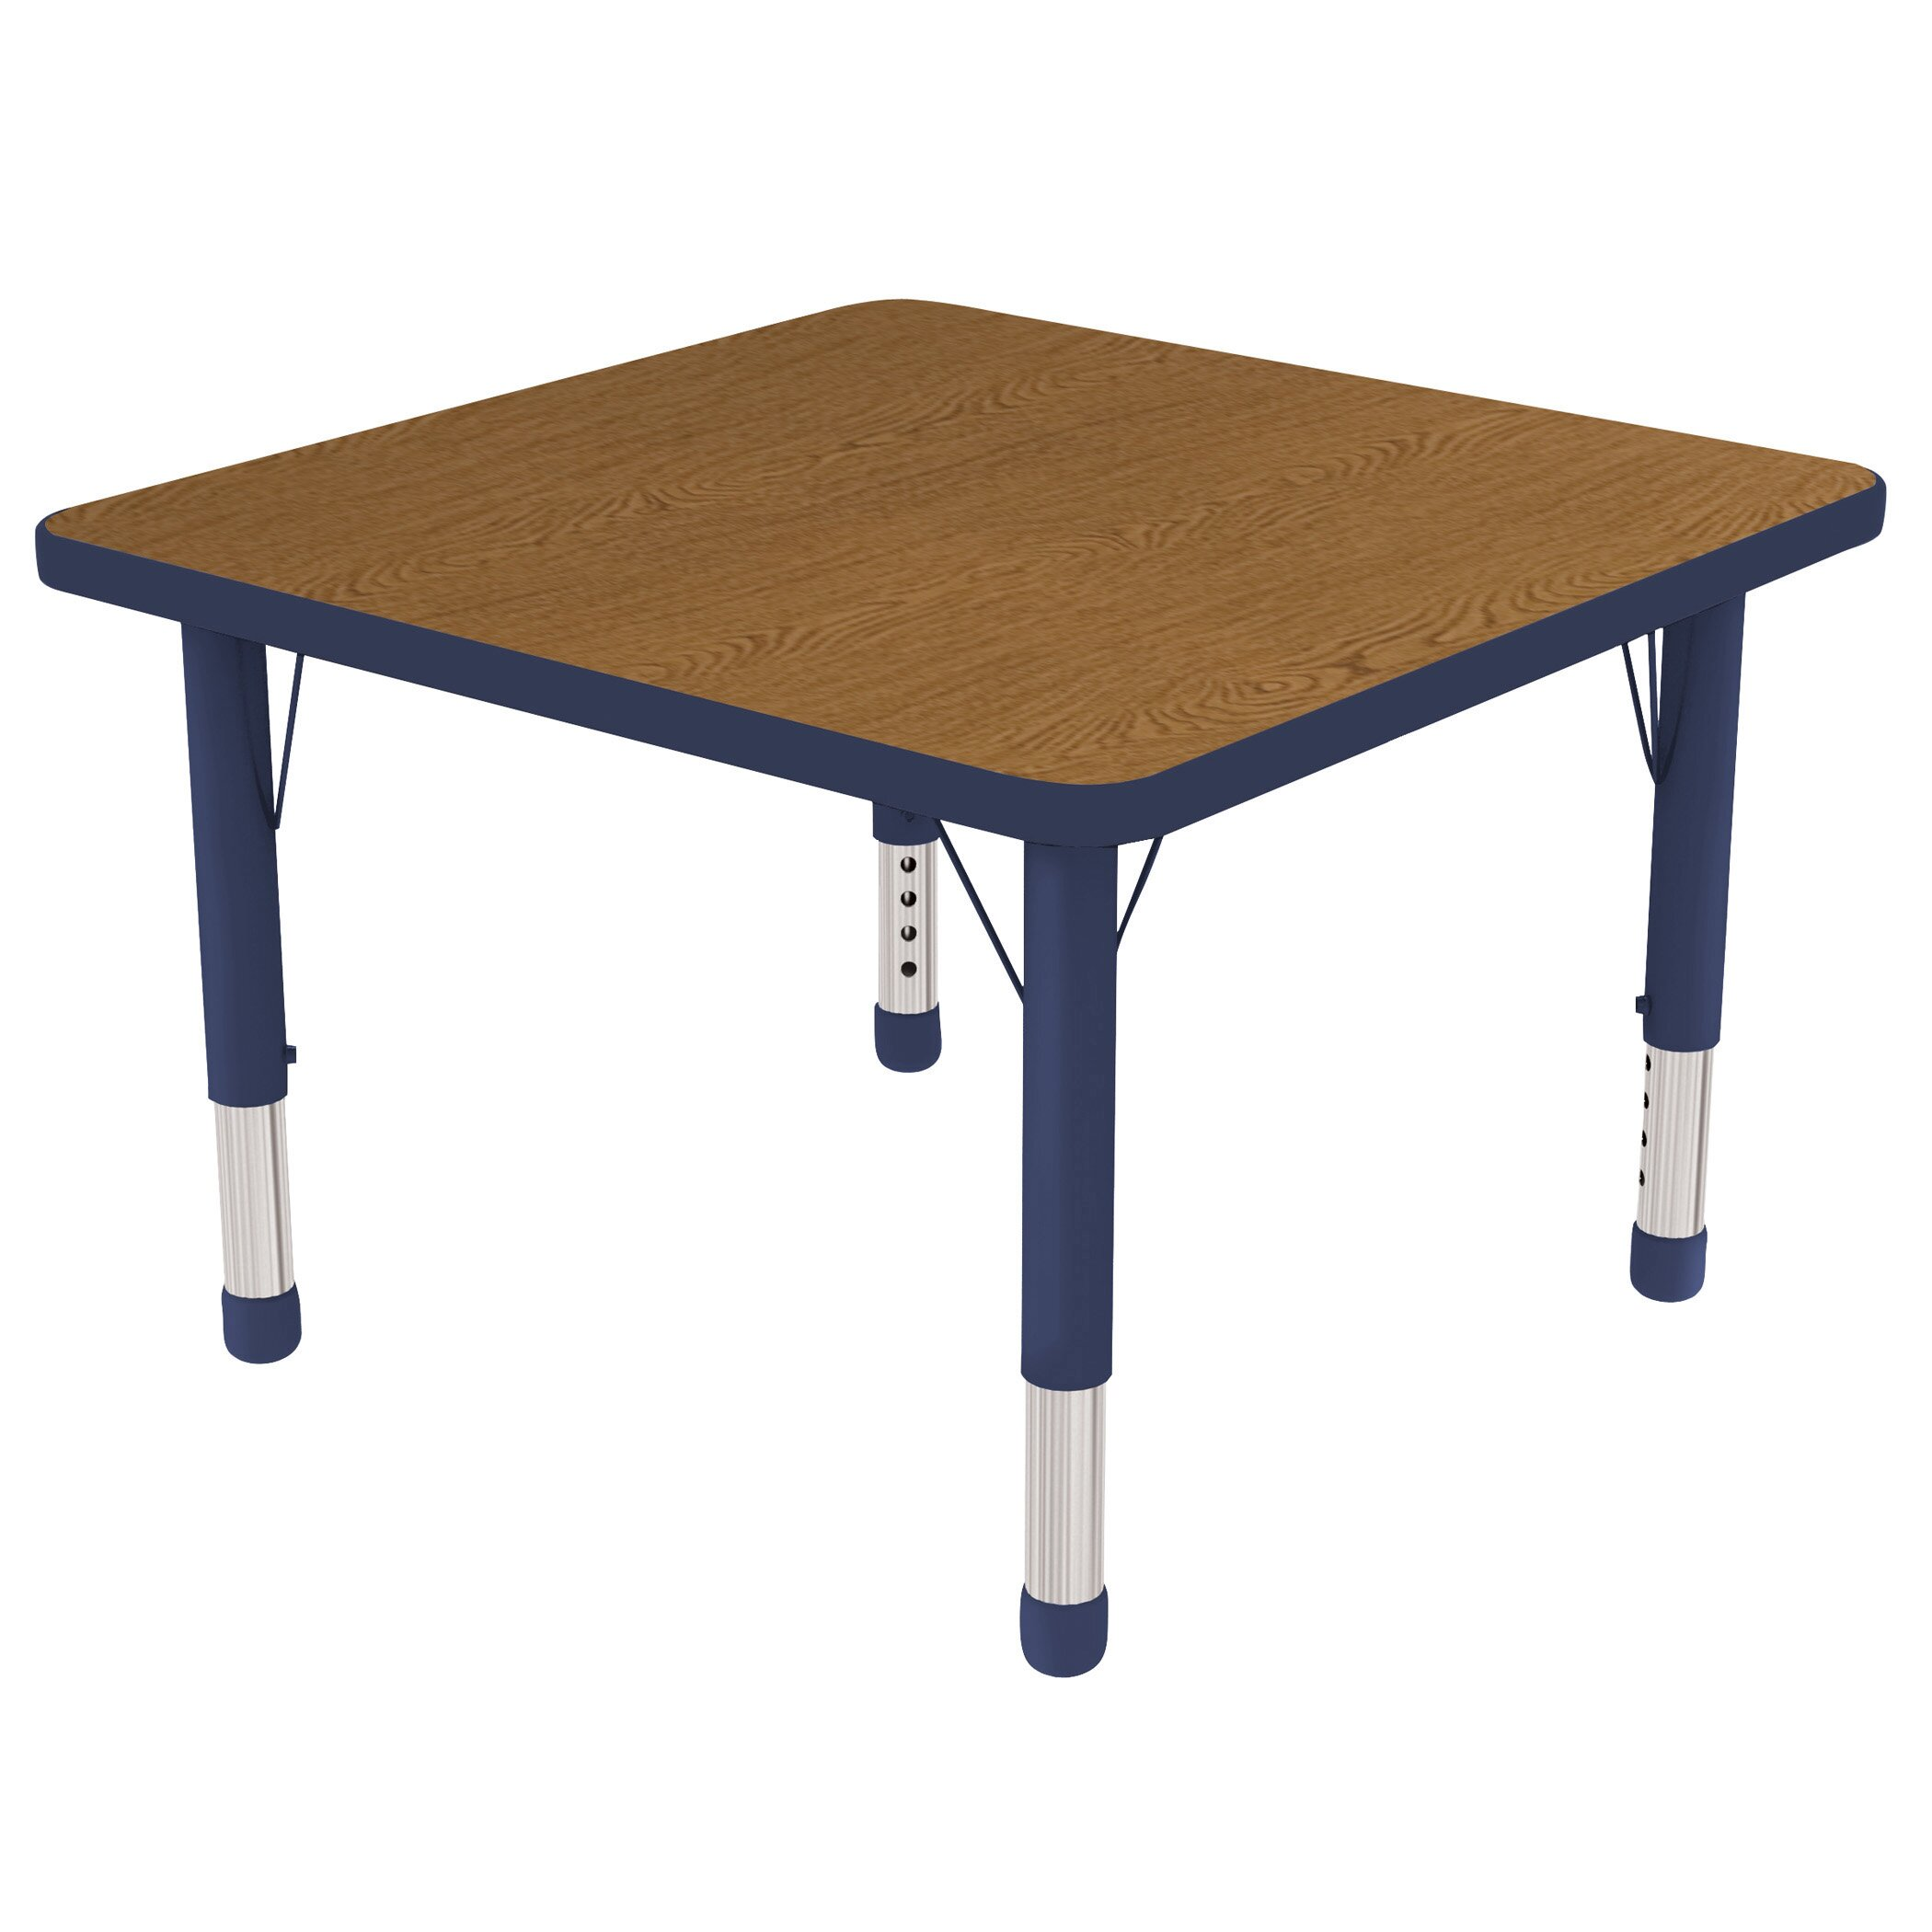 Ecr4kids 30 square activity table reviews wayfair supply for School furniture 4 less reviews